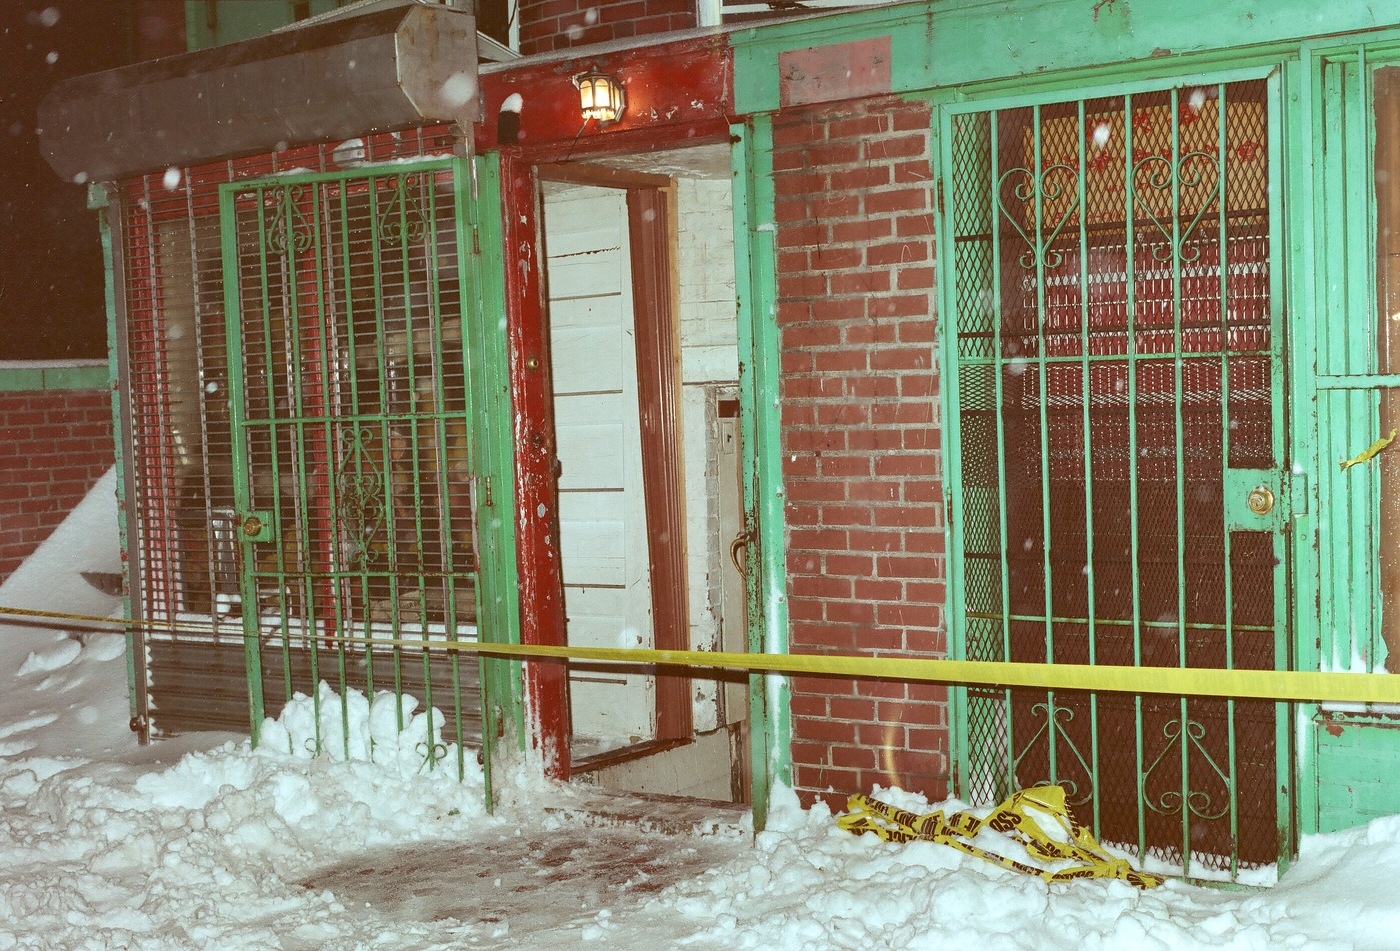 Entrance to social club on Tyler Street as seen in 1991. Hung Tien Pham is wanted for his alleged involvement in the execution-style murders of five men at the Chinatown social club in Boston,